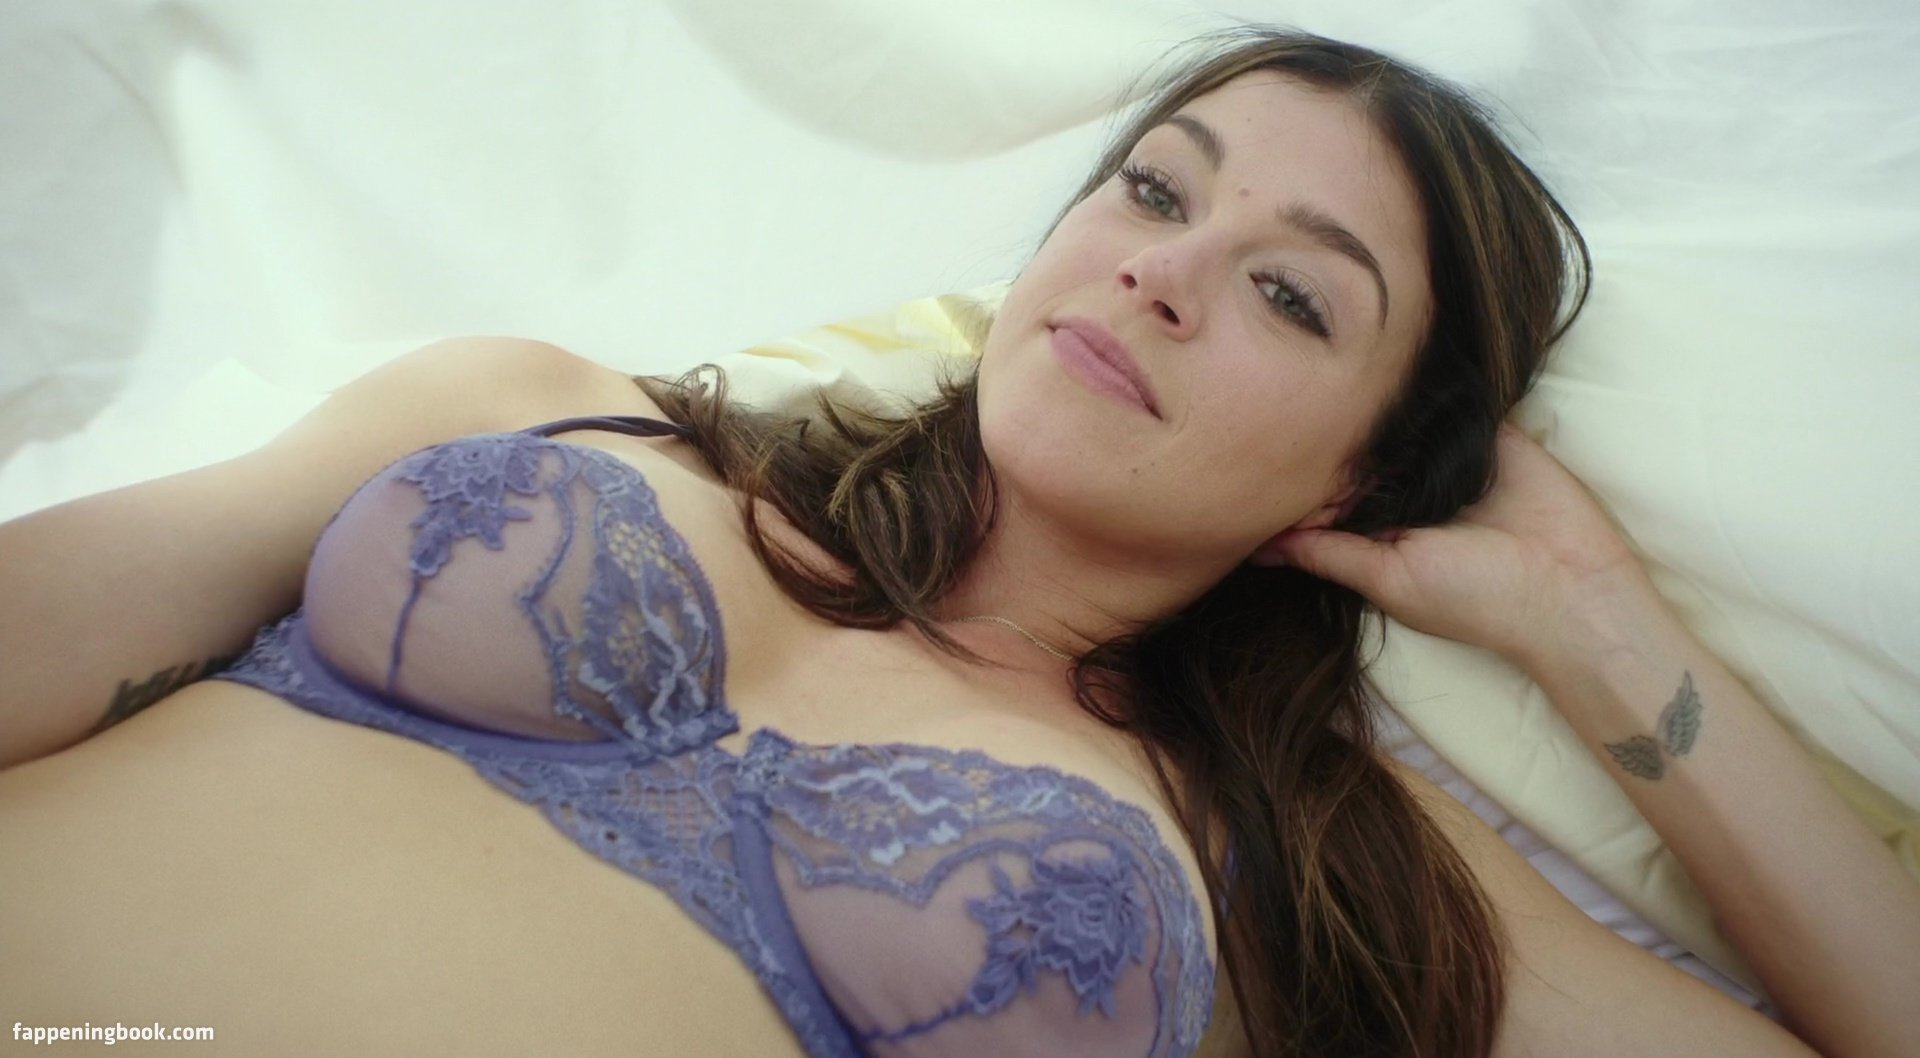 Adrianne Palicki Sexy - The Fappening Leaked Photos 2015-2021